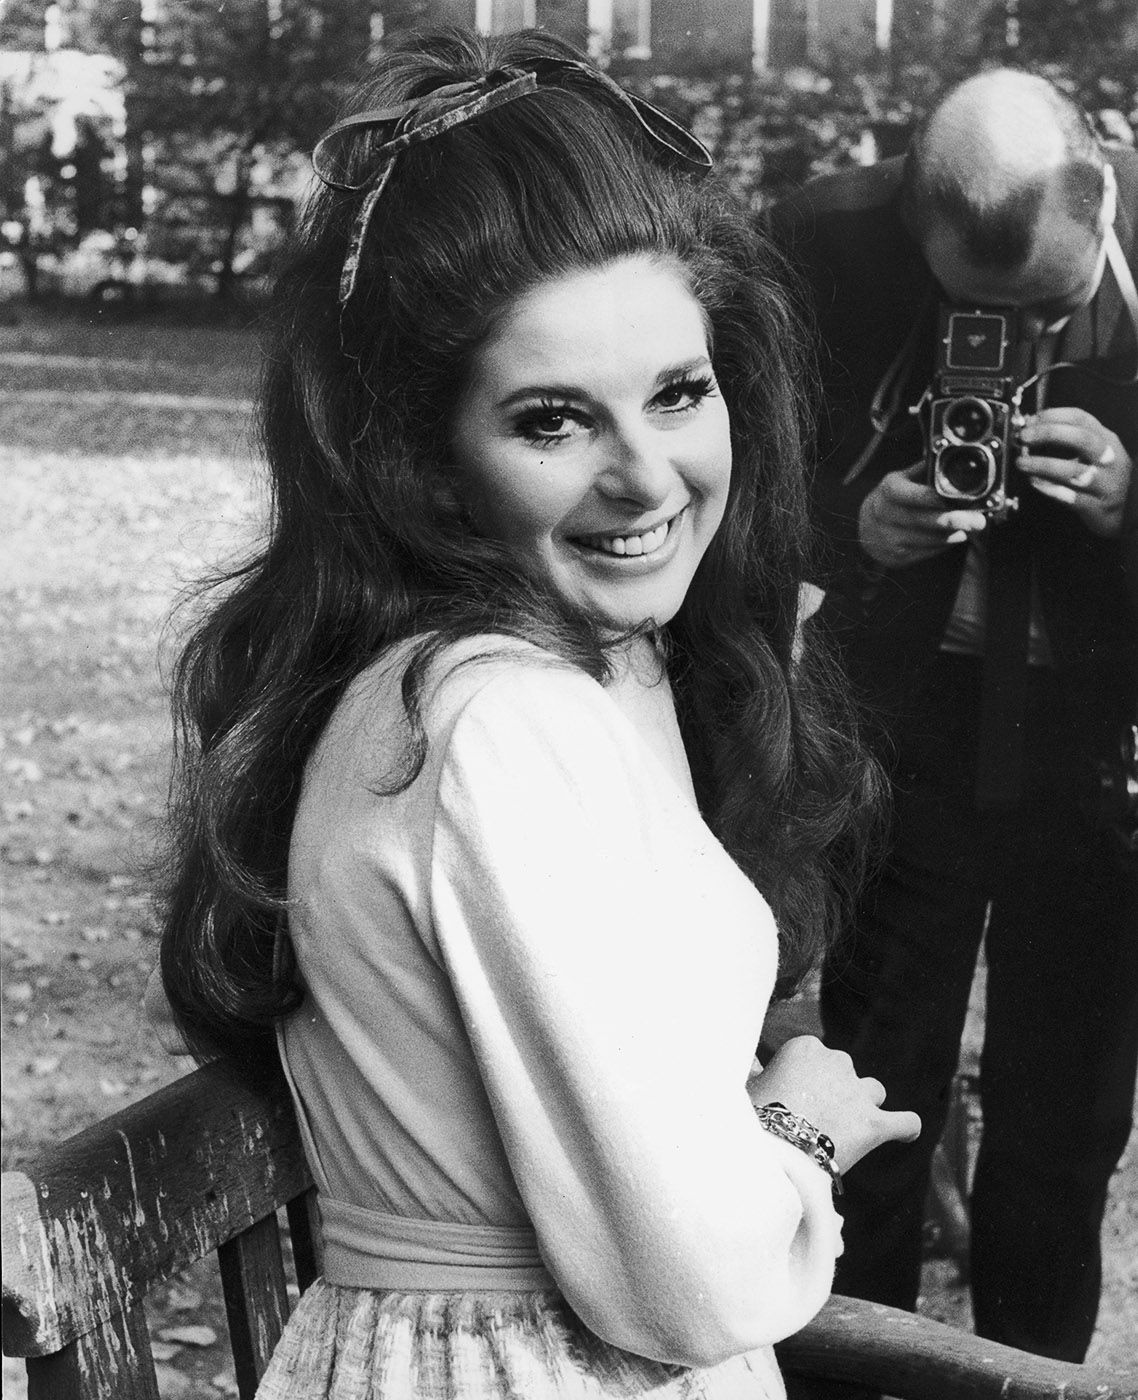 1969 | American country singer Bobbie Gentry poses for a photographer during a visit to London with high hair and a bright smile. via @stylelist